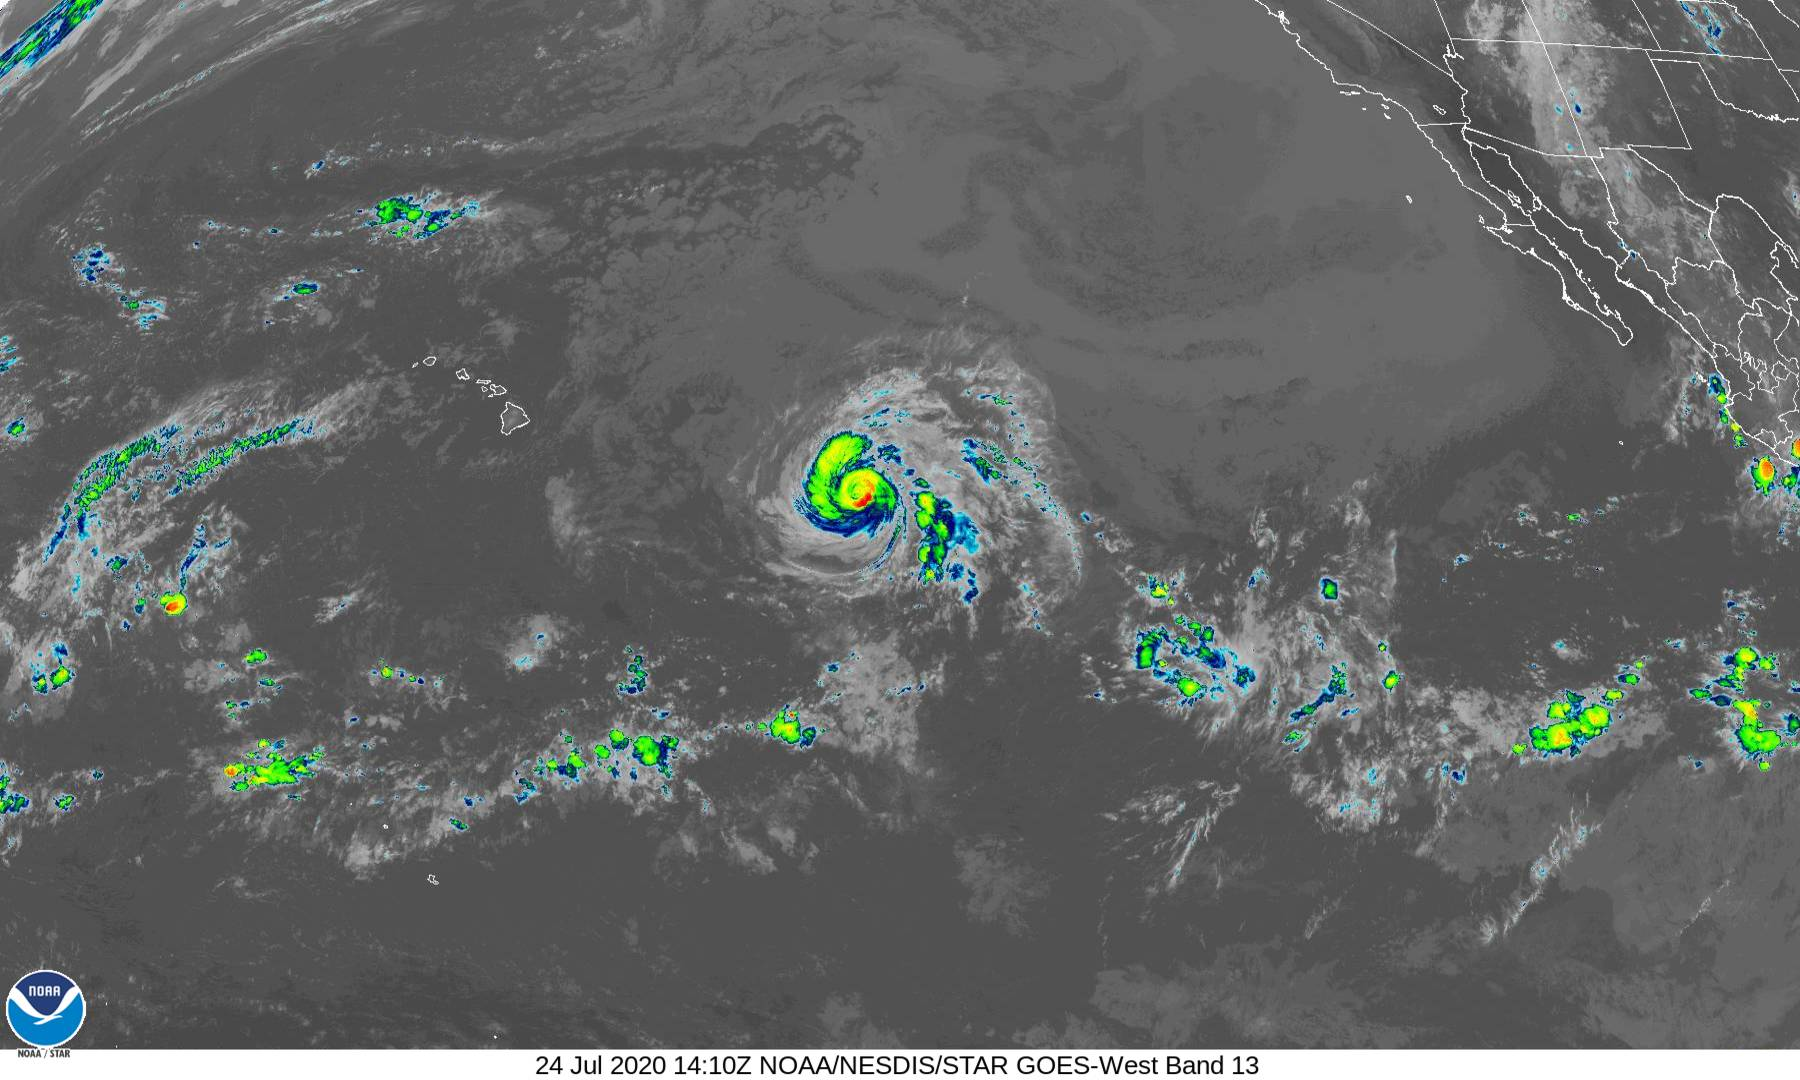 Hurricane WATCH Issued for Maui and Big Island (2 p.m. Update)